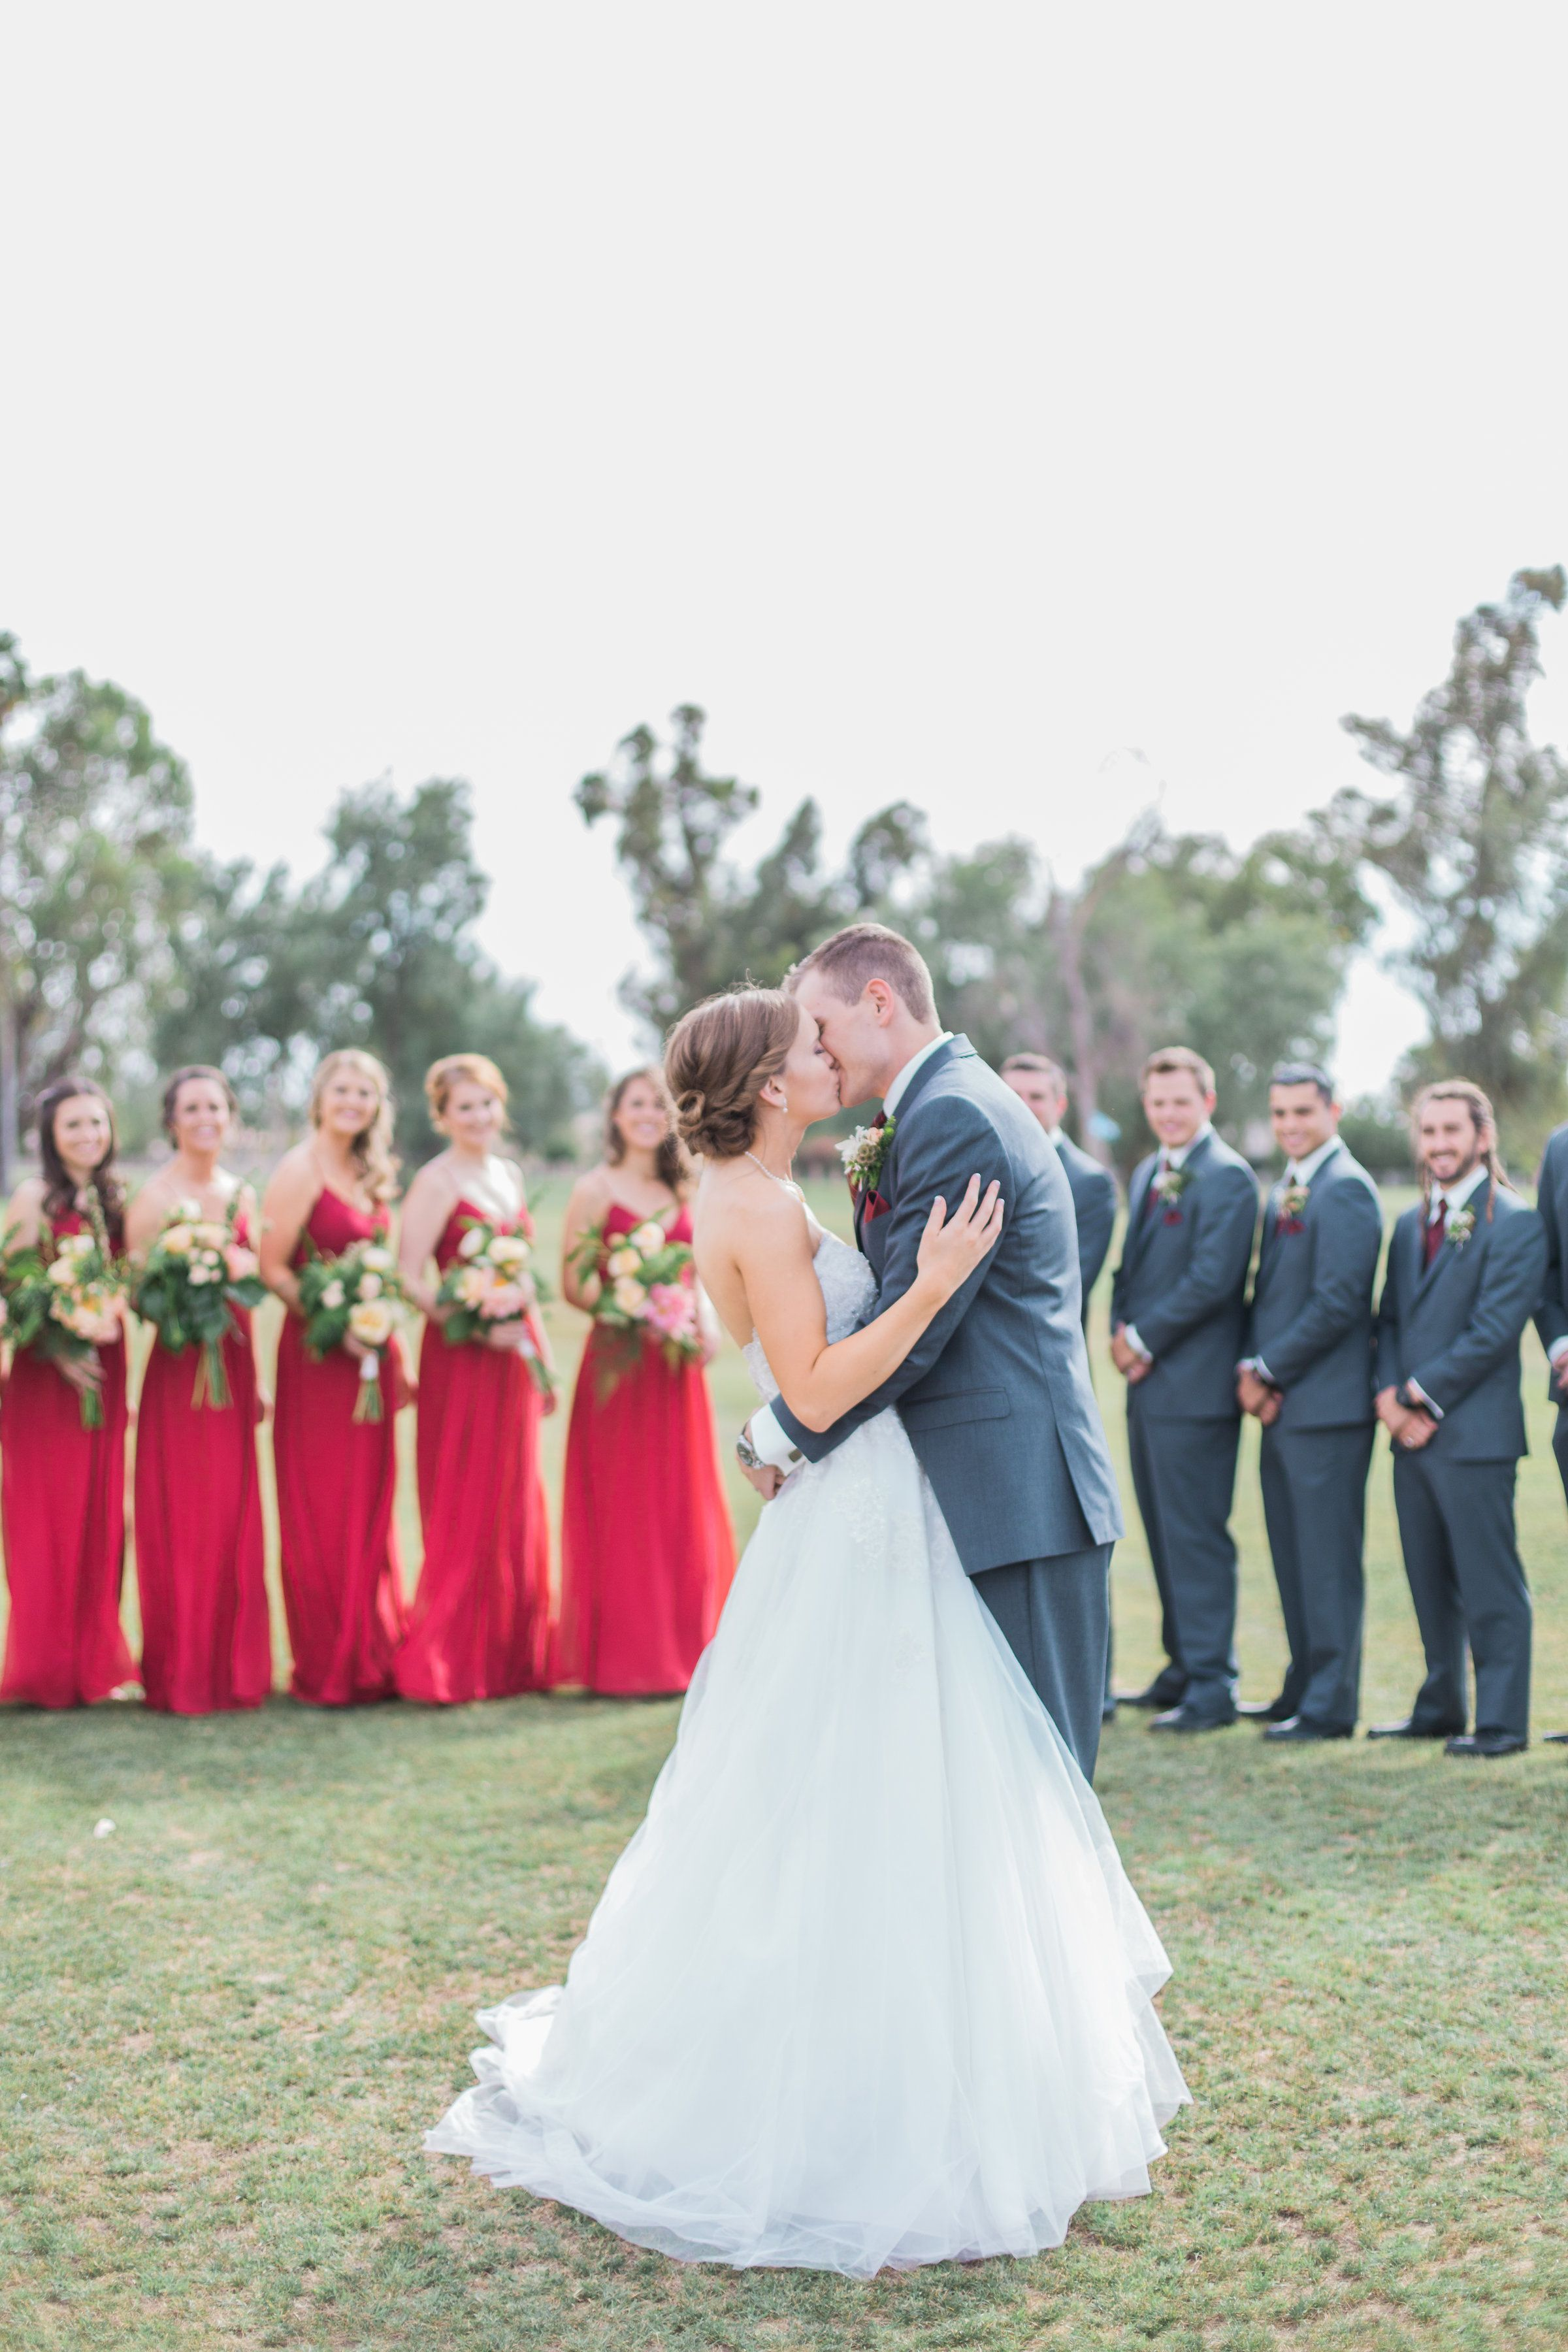 Red dress for wedding reception  Red and Blue bridal party uc mollymcphoto  MuM Photography